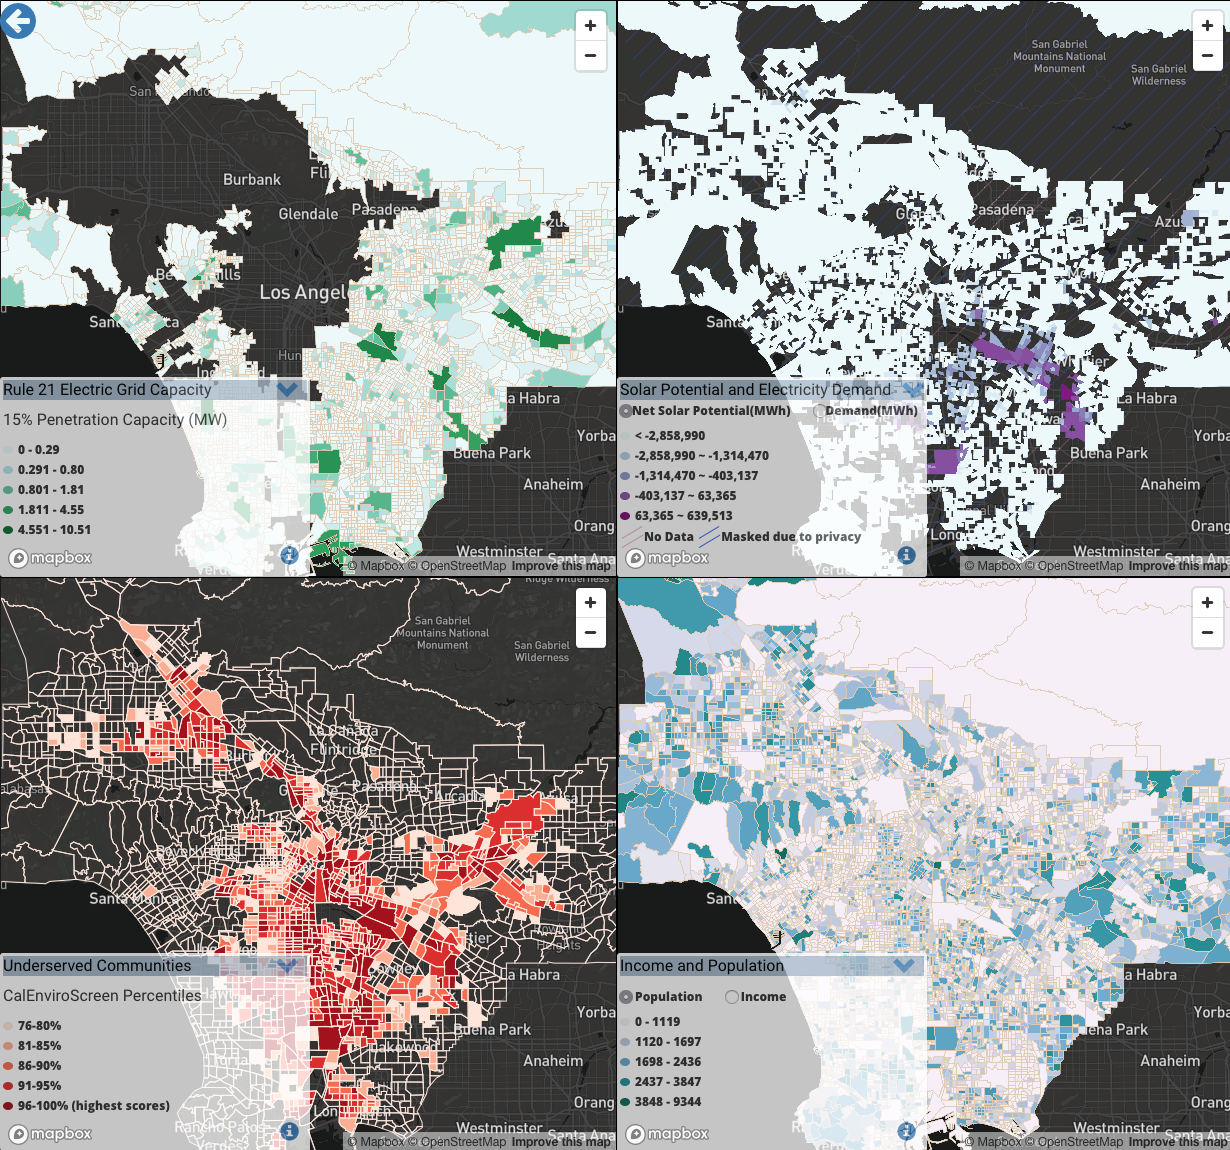 coupling community knowledge with big data tools to facilitate equitable energy transitions